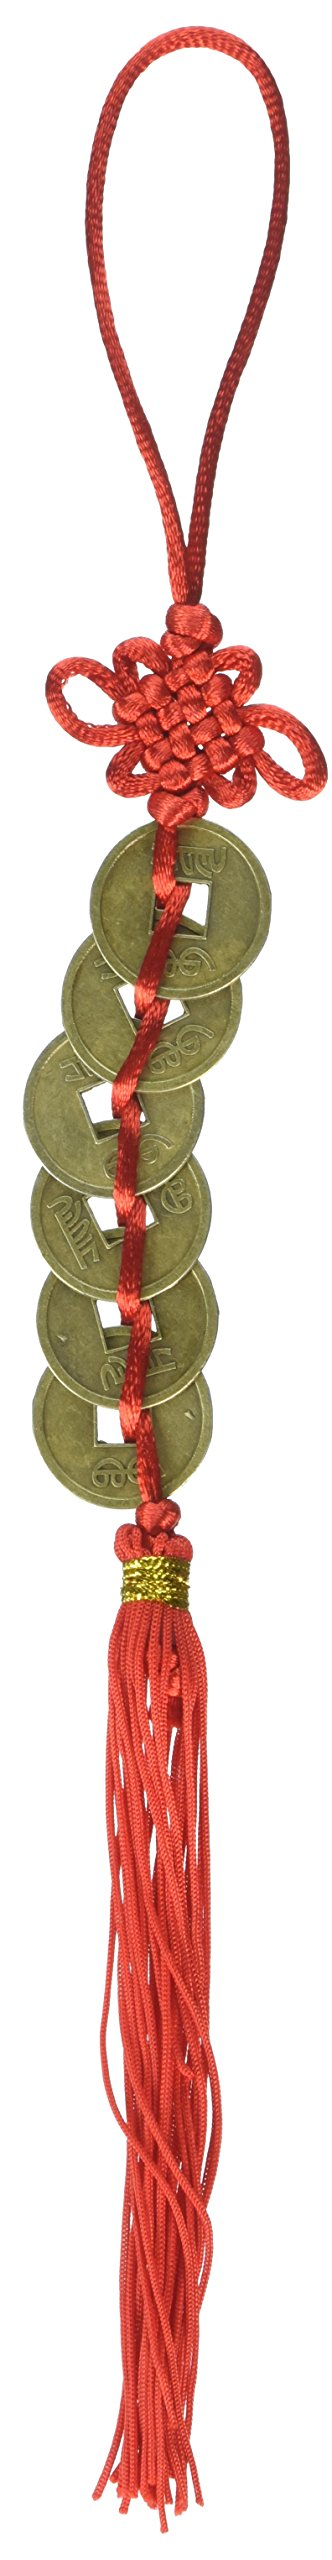 StealStreet 42322 Six Coin Chinese Character Decorative Ornament/Hanger, 12.5'', Red